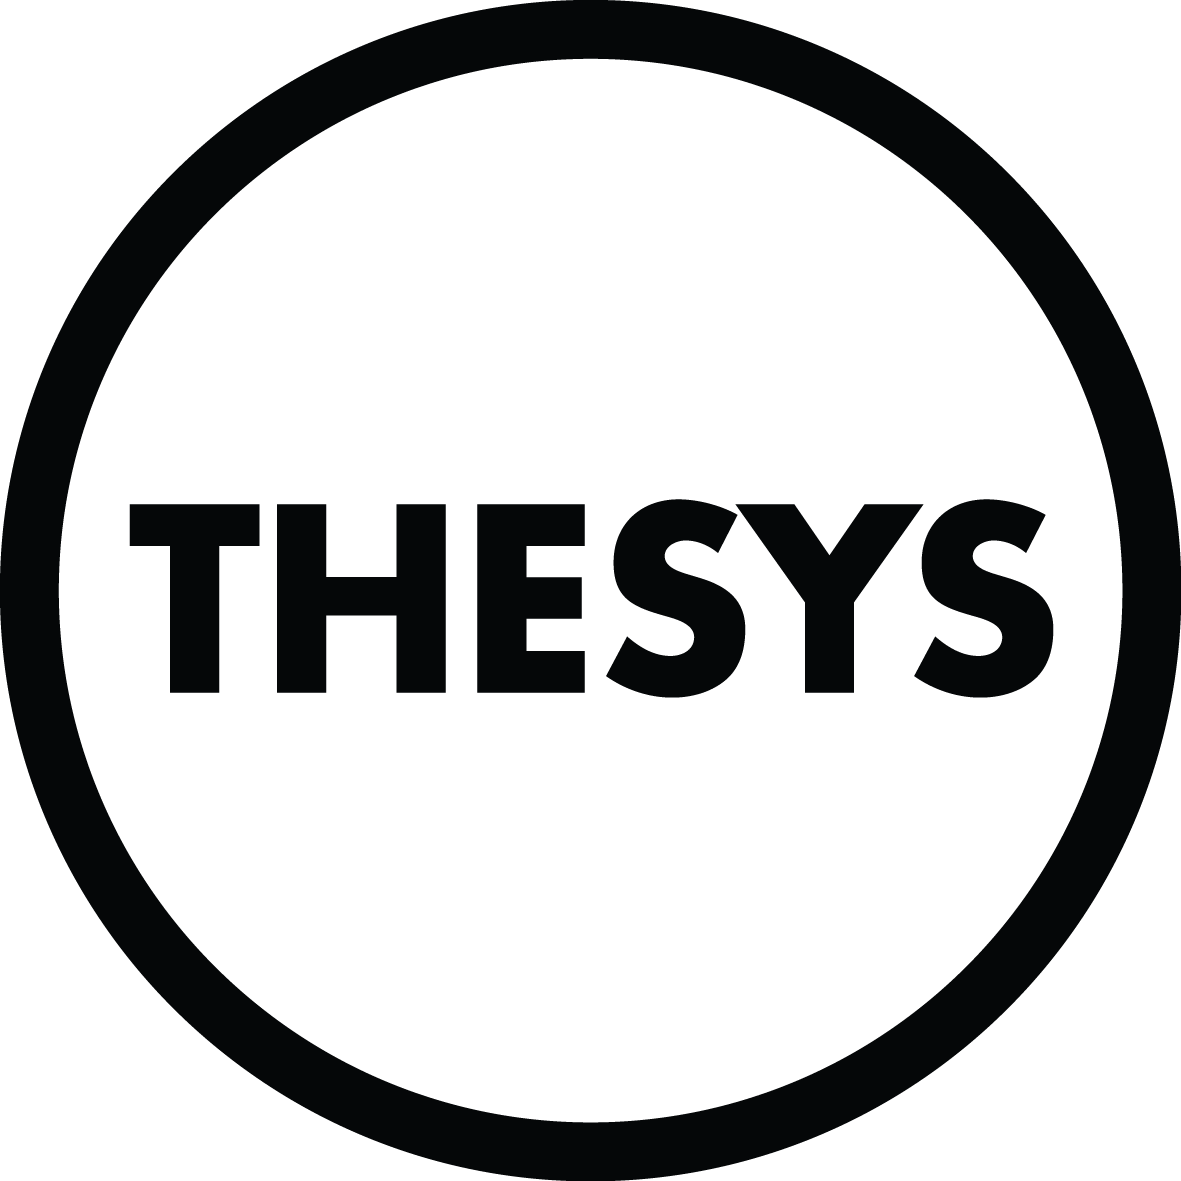 THESYS Design